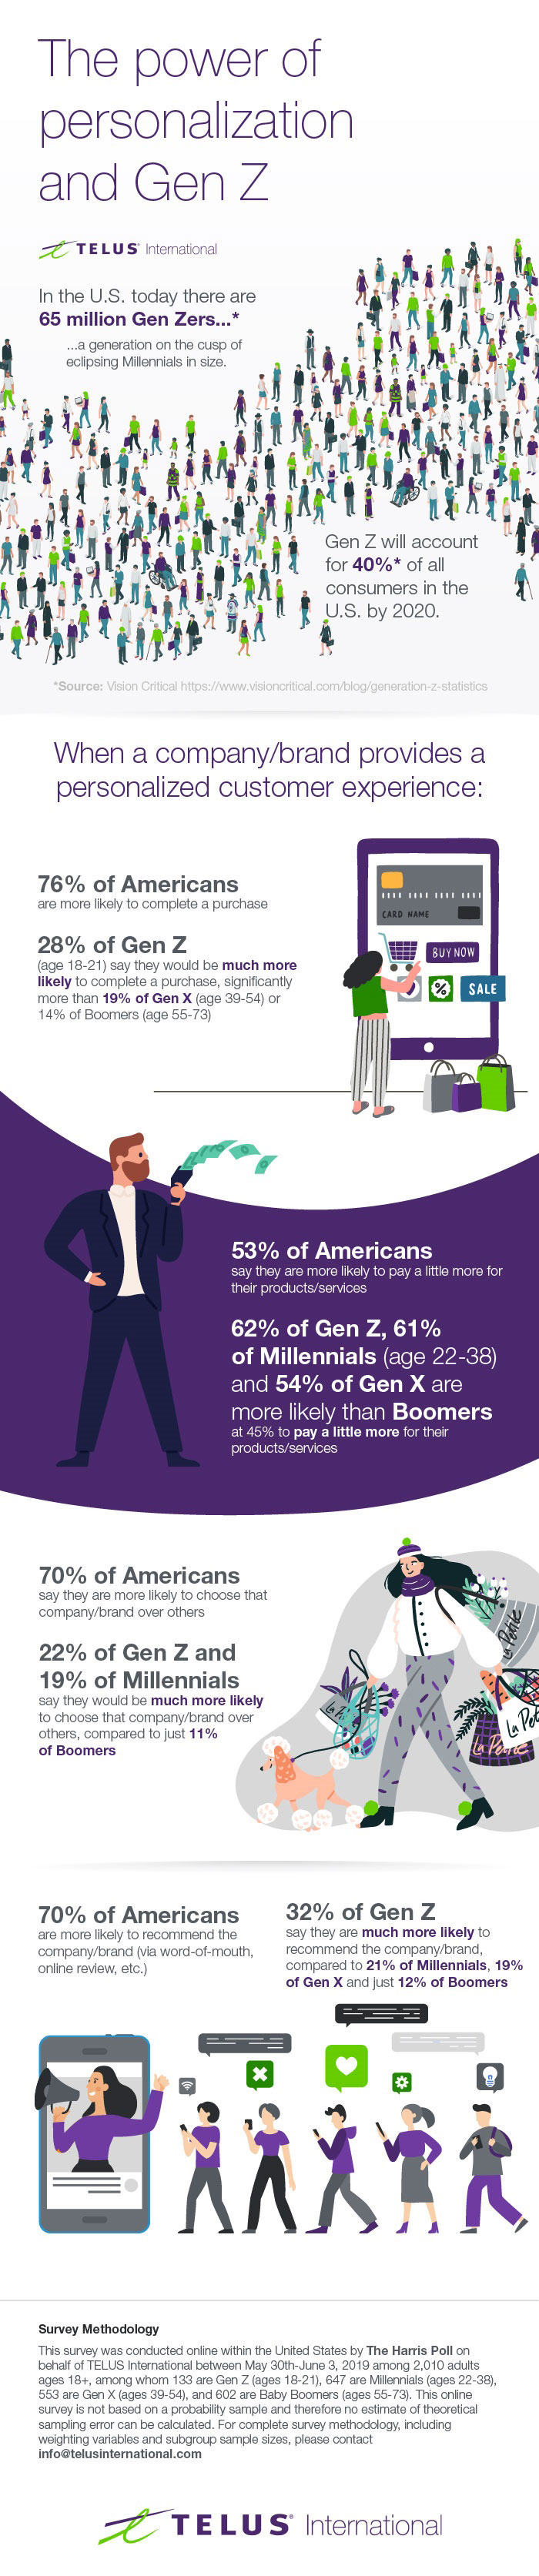 FINAL TI Infographic The-power-of-personalization